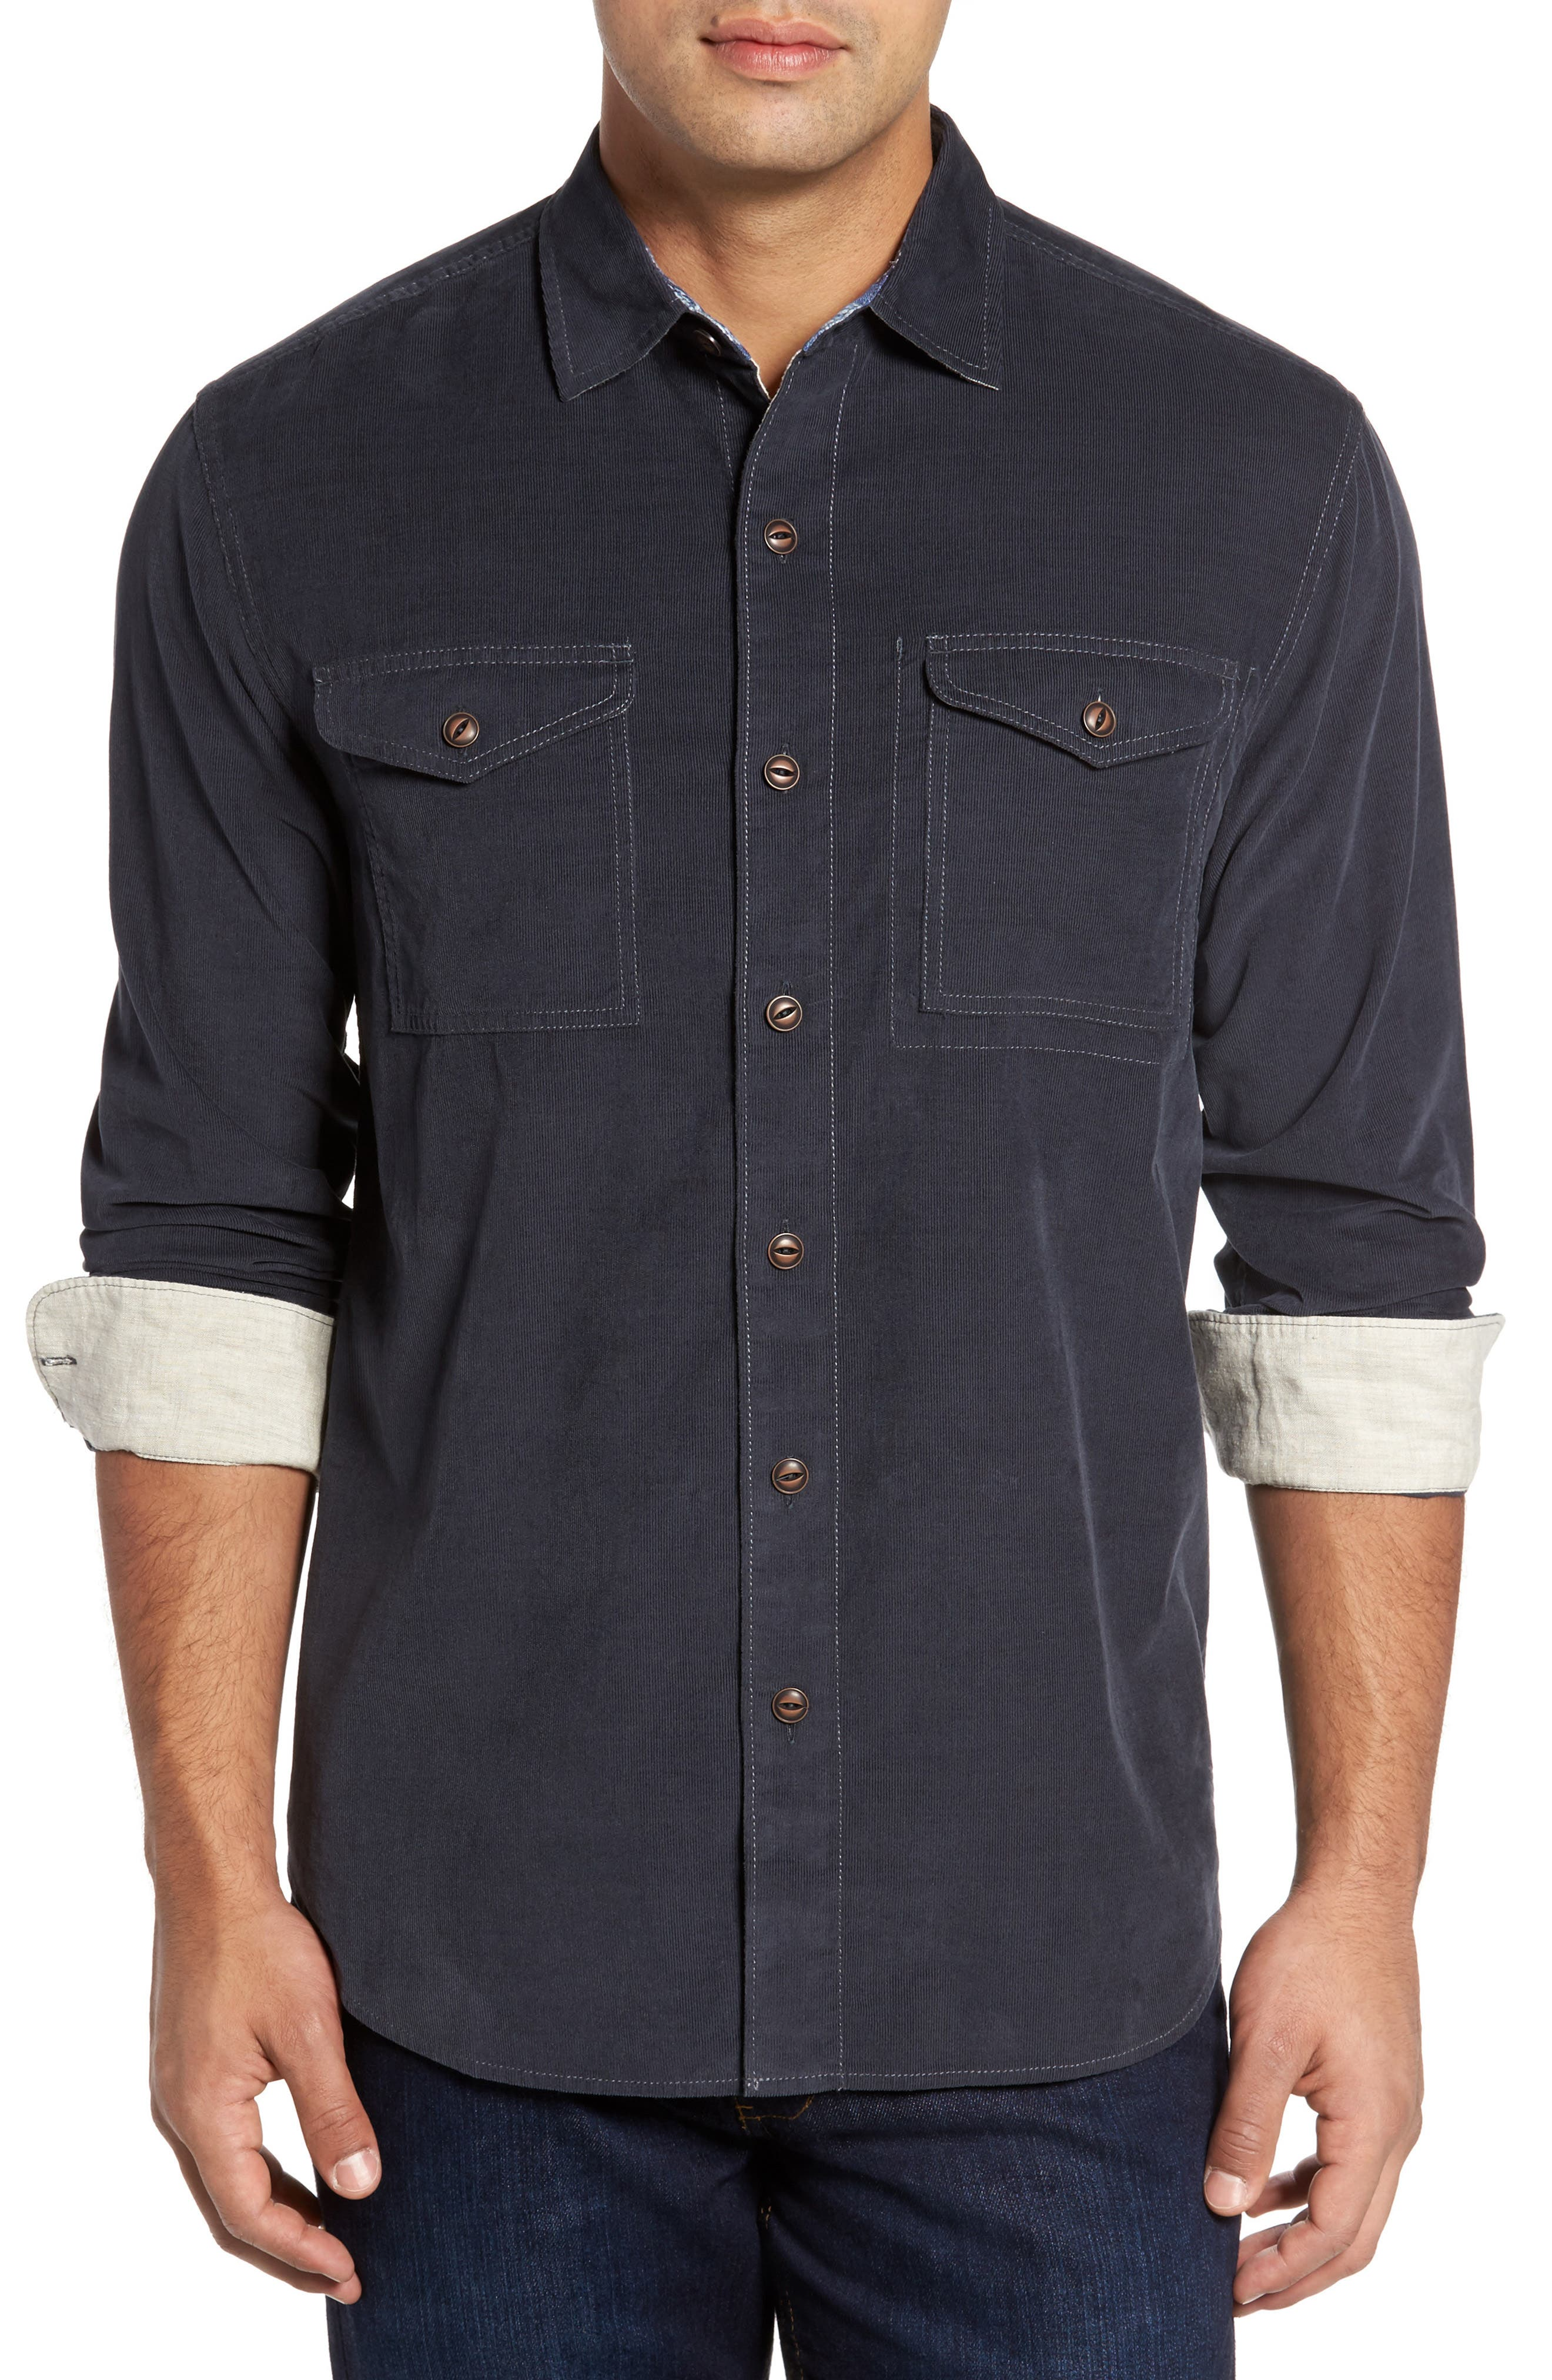 Main Image - Tommy Bahama Harrison Cord Standard Fit Shirt